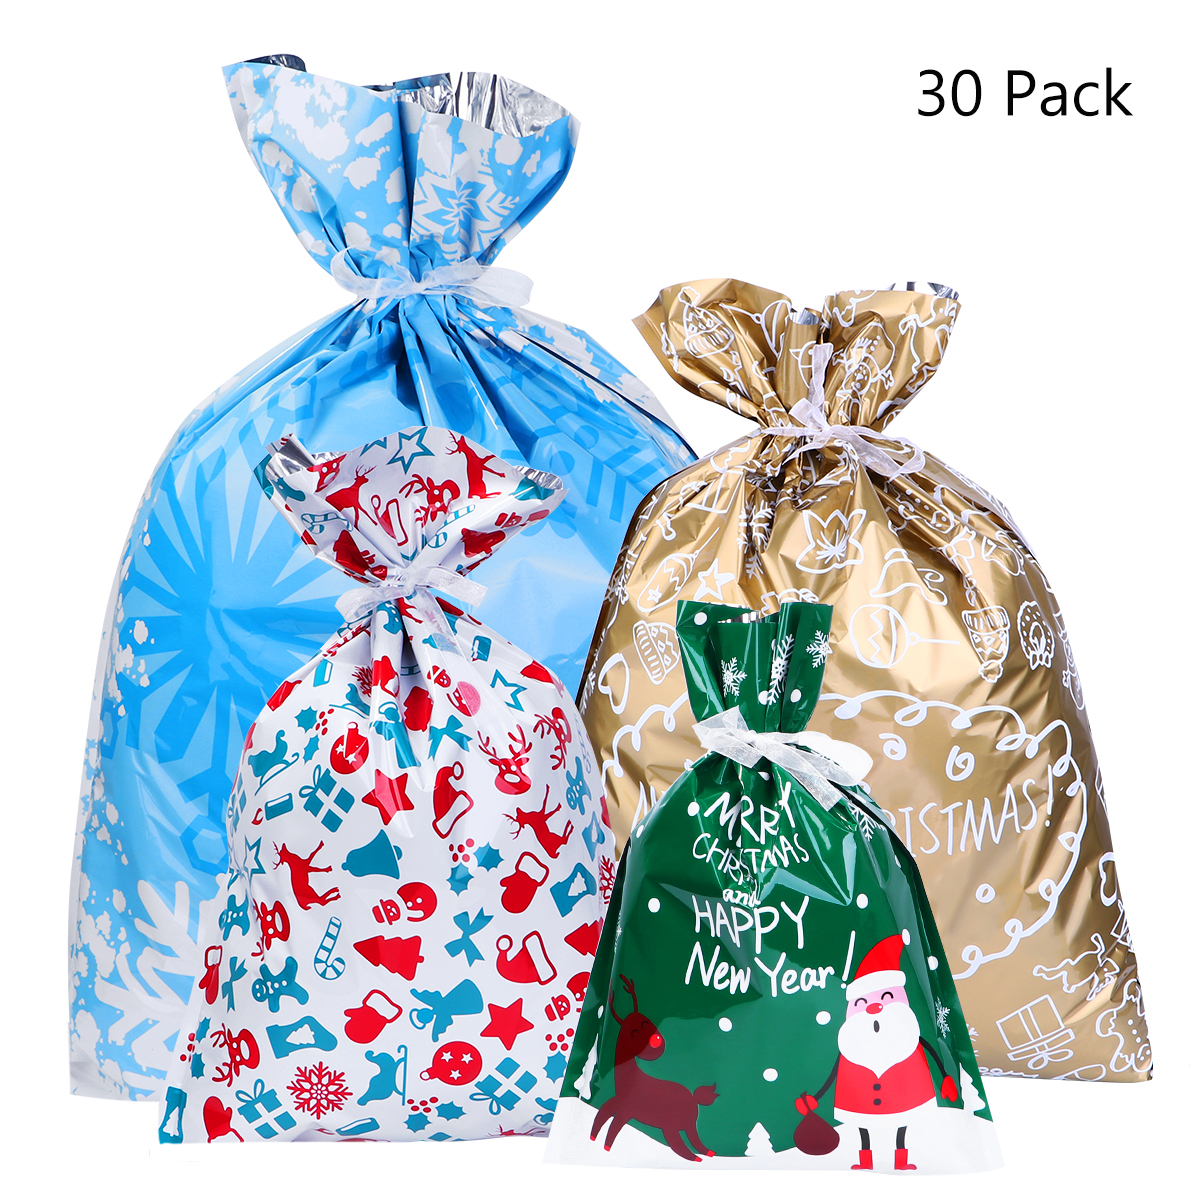 30PCS Christmas Gift Bags Cute Assorted Styles Drawstring Gift Wrapping Party Favors For Festival Christmas Holiday